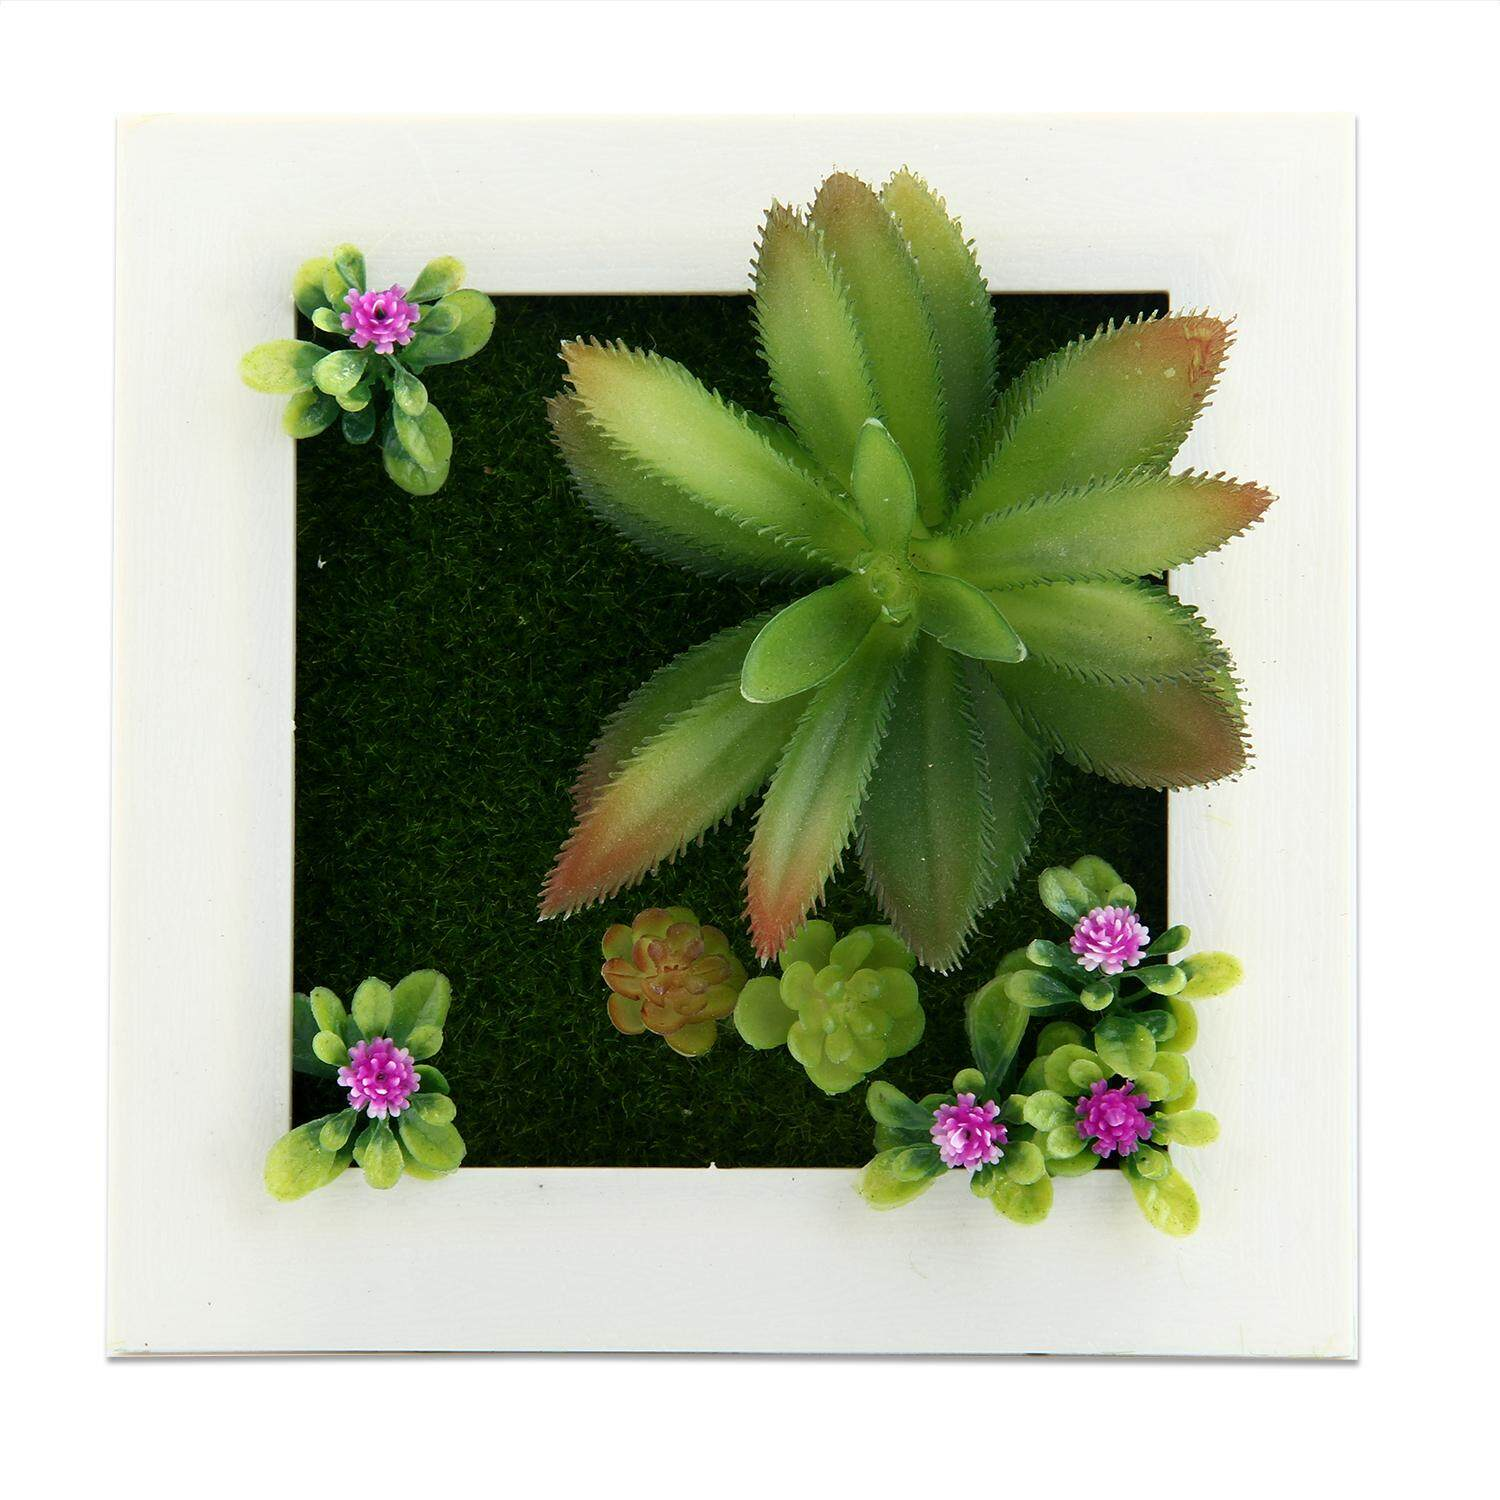 YUESHUNBUHA 3D Imitation Frame Shape Wall Hanging Artificial Flowers Metope Fake Succulents for Decoration (11#) - intl